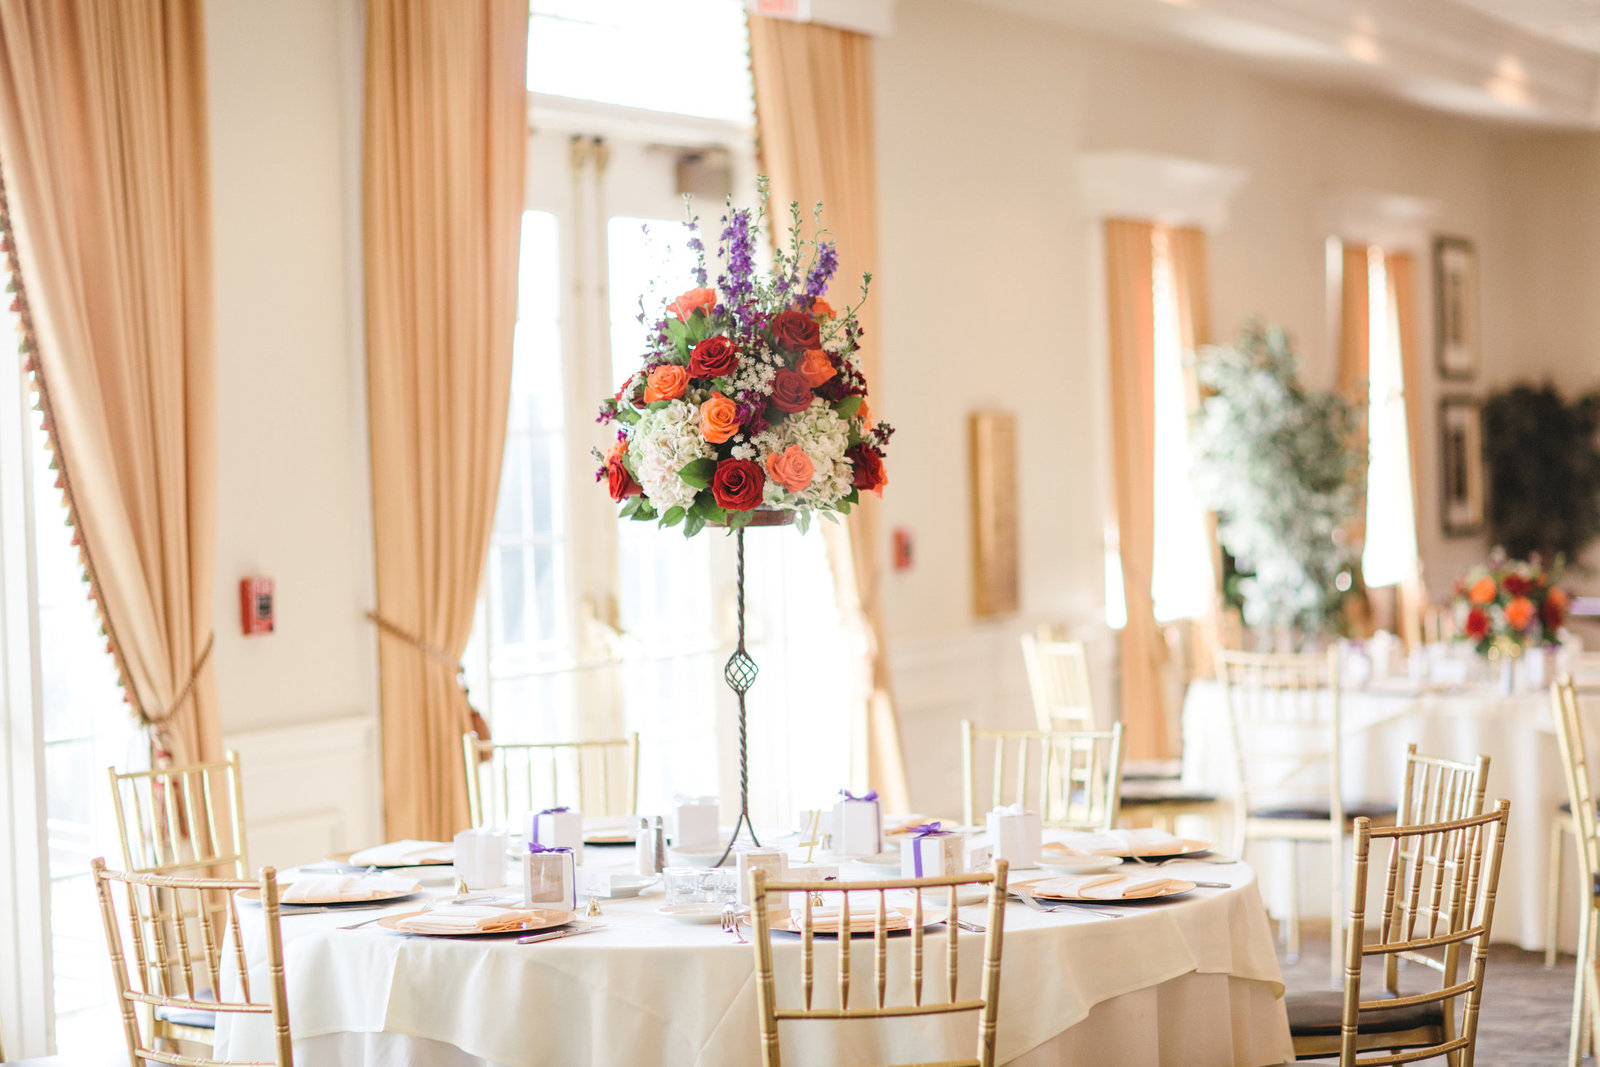 Top wedding coordinator in Ashburn, VA